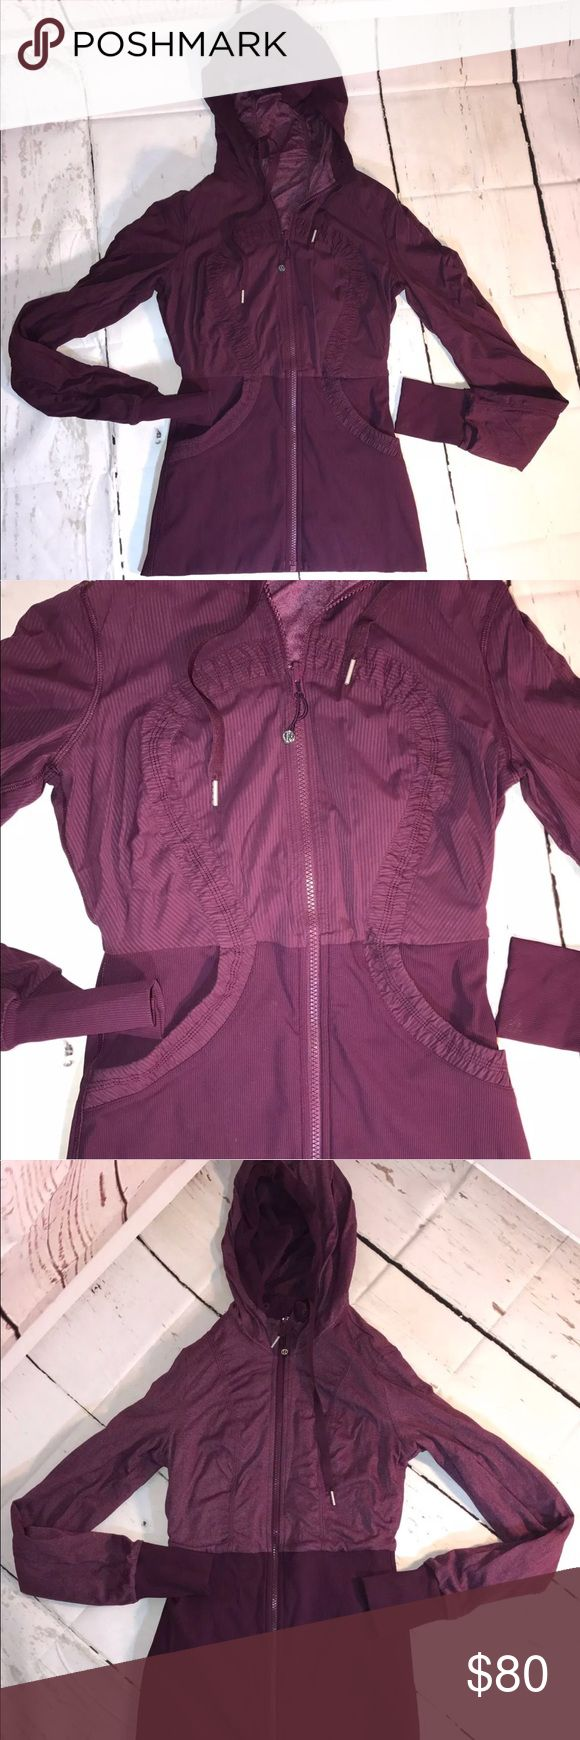 Lululemon Dance studio jacket reversible size 8 Lululemon dance studio jacket  size 8 Reversible I bought this online, but it's too small for me  Excellent condition! lululemon athletica Jackets & Coats